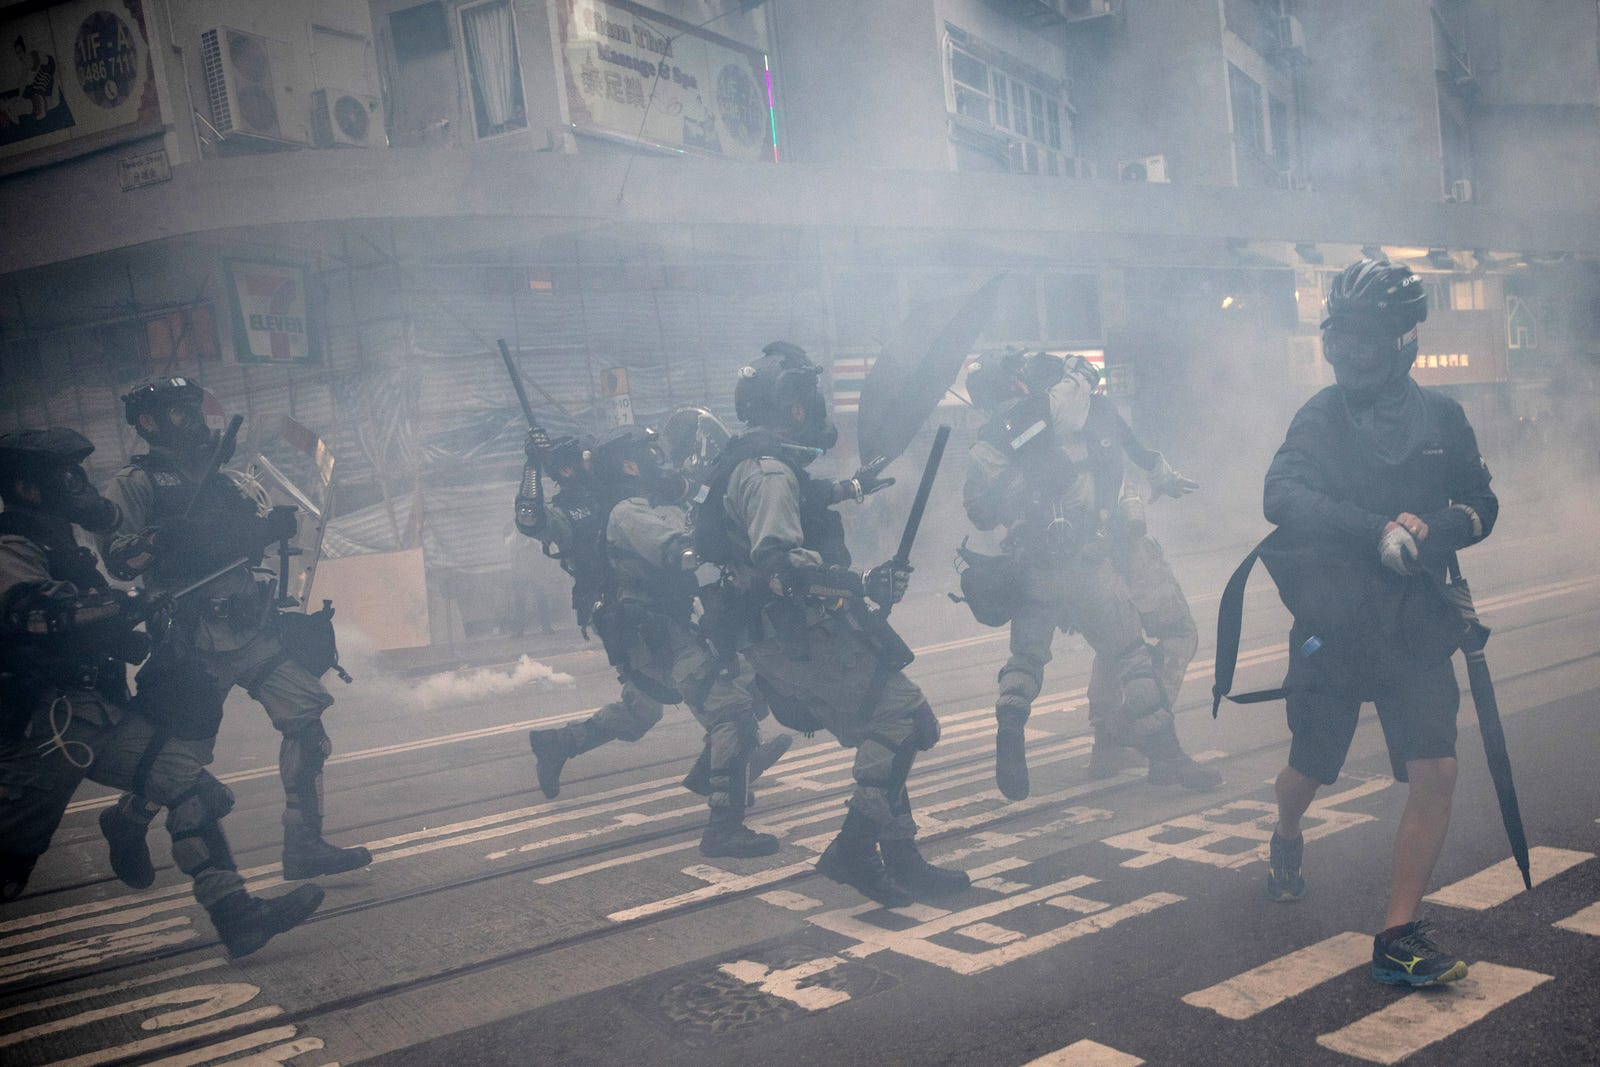 A pro-democracy protester runs from police as they arrest protesters during clashes in Wan Chai on October 01, 2019 in Hong Kong